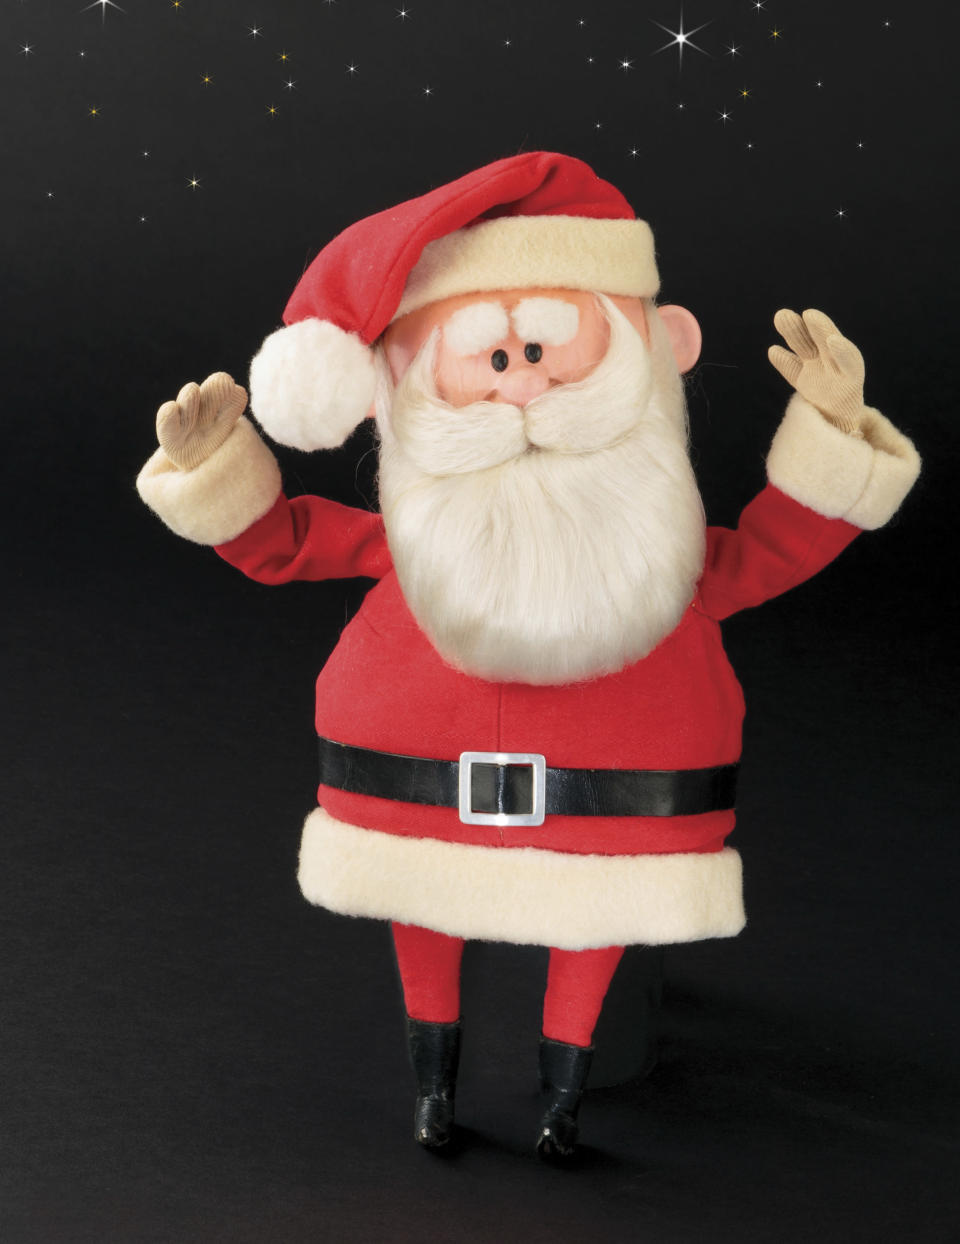 """This image released by Profiles in History shows a Santa Claus puppet used in the filming of the 1964 Christmas special """"Rudolph the Red-Nosed Reindeer."""" A buyer shouted out with glee that they would pay $368,000 for the Rudolph and Santa Claus figures used in the perennially beloved Christmas special """"Rudolph the Red Nosed Reindeer."""" Bidding for the figures soared past the projected sale price of between $150,000 and $200,000 on Friday, Nov. 13, 2020 at the Icons & Legends of Hollywood Auction held in Los Angeles by Profiles in History. (Profiles in History via AP)"""